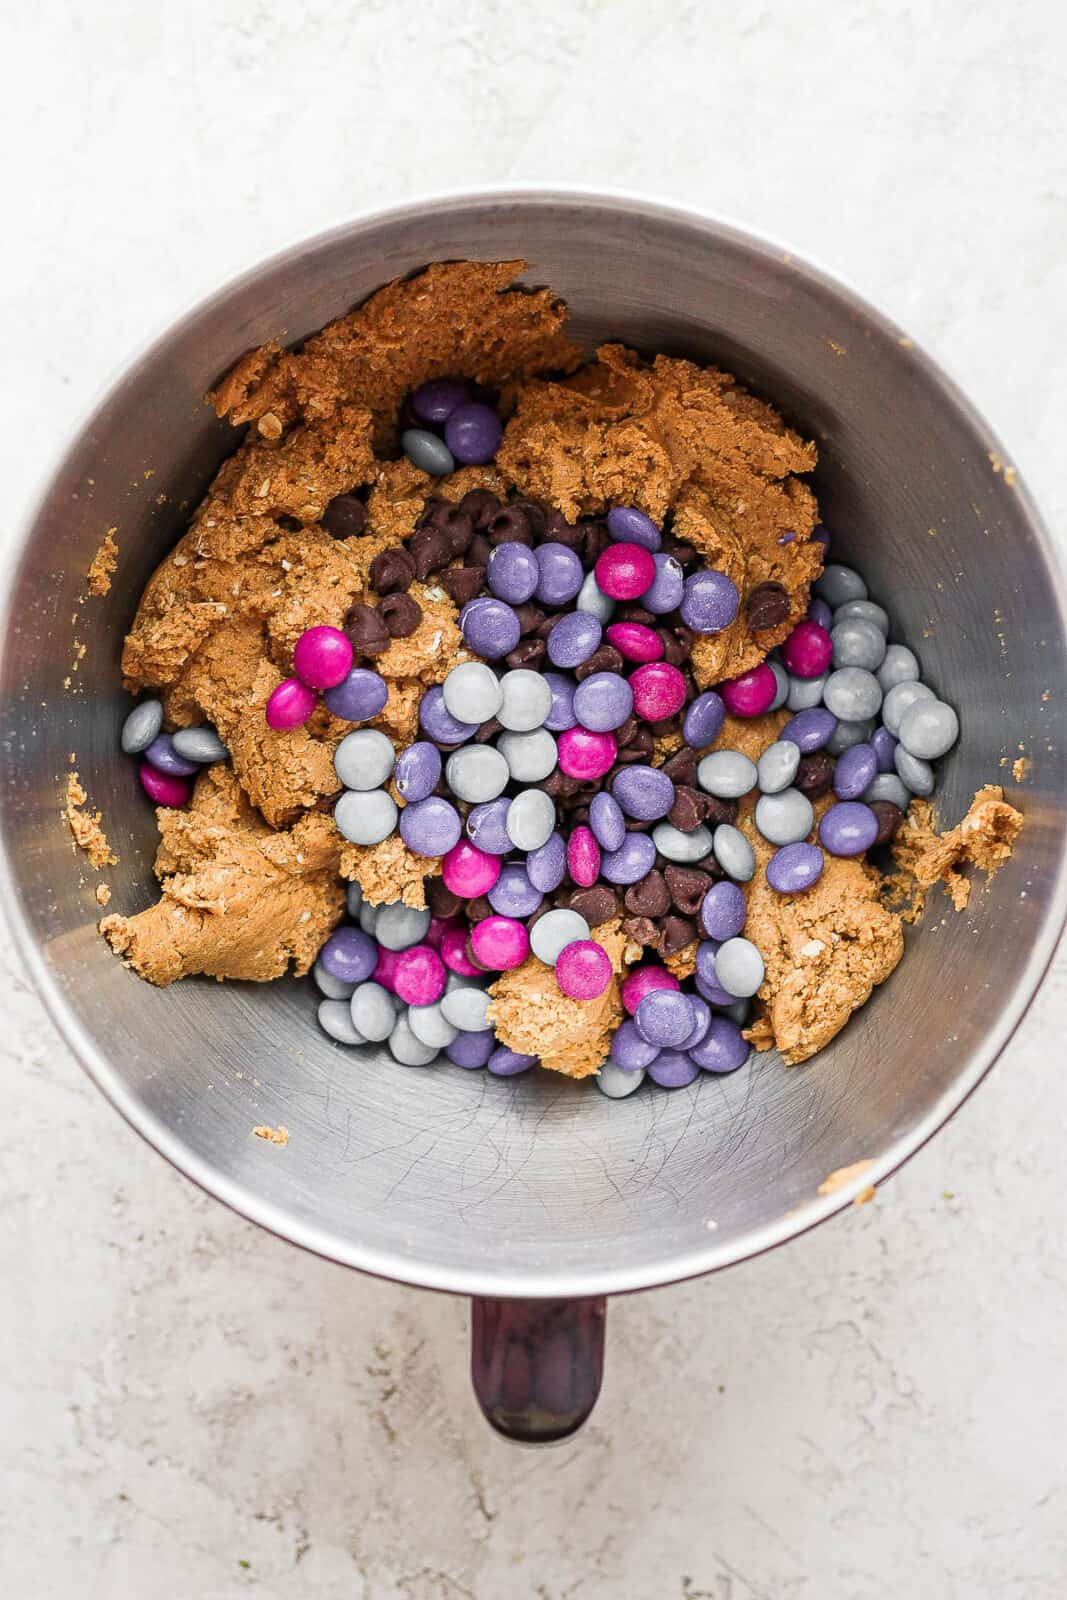 Monster cookie dough in a bowl with chocolate chips and m&ms.